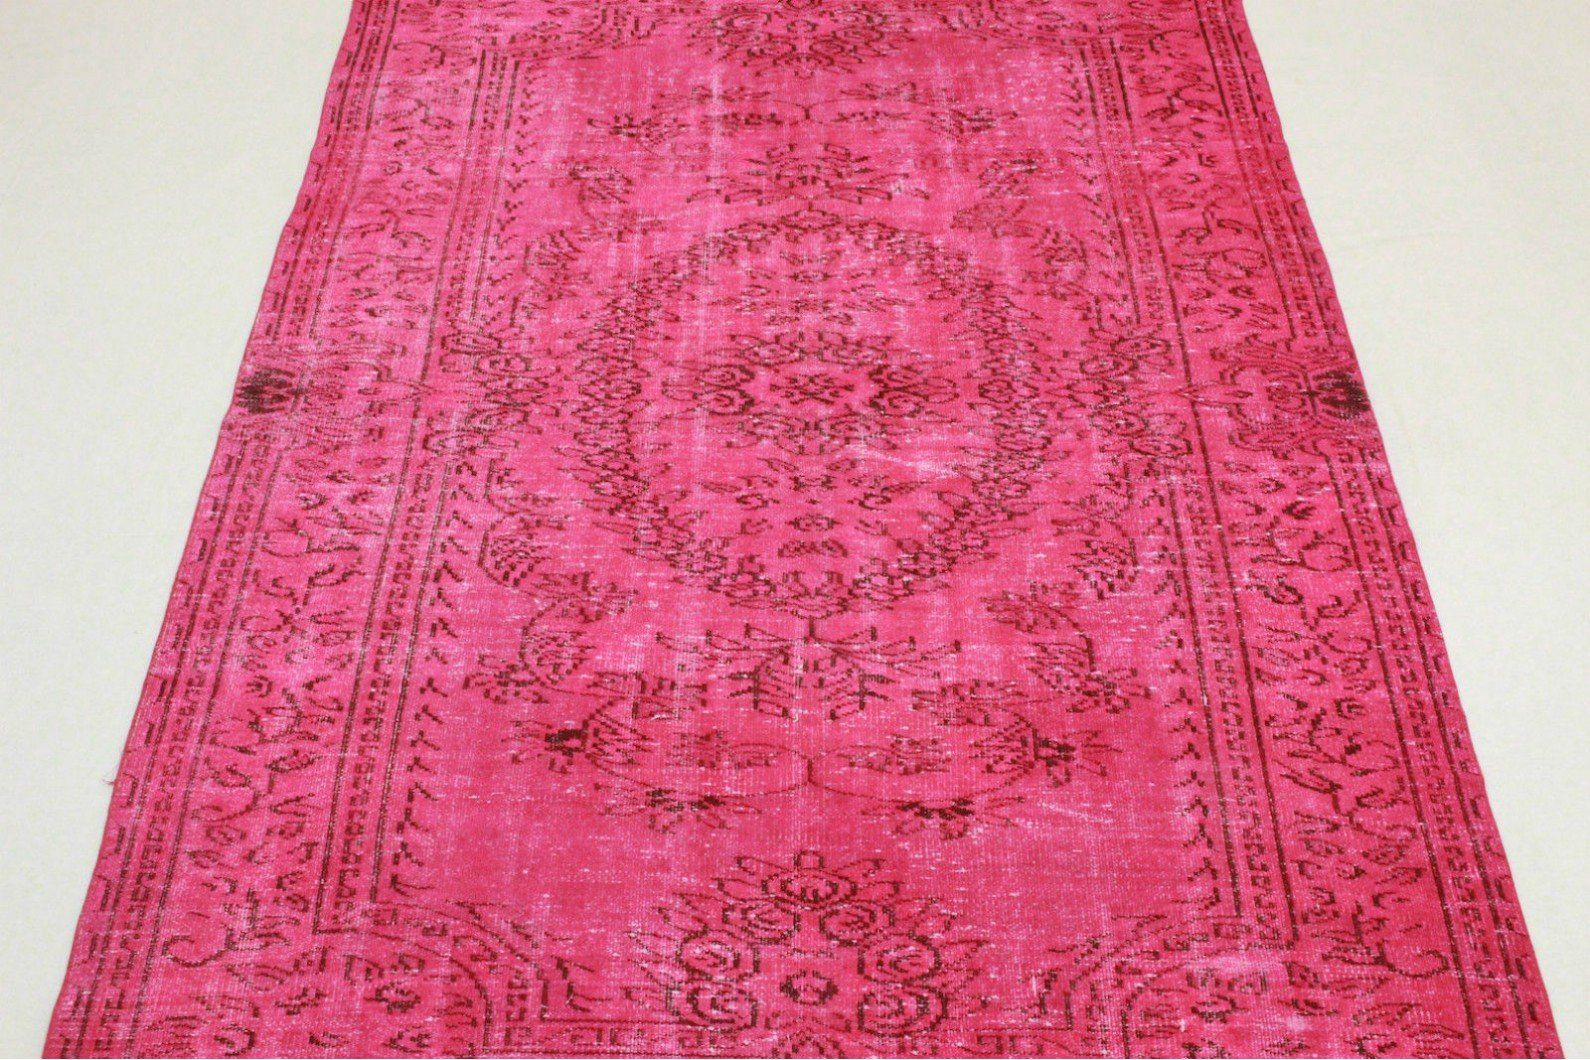 Vintage Teppich Fuchsia Vintage Teppich Pink In 290x180cm For The Home